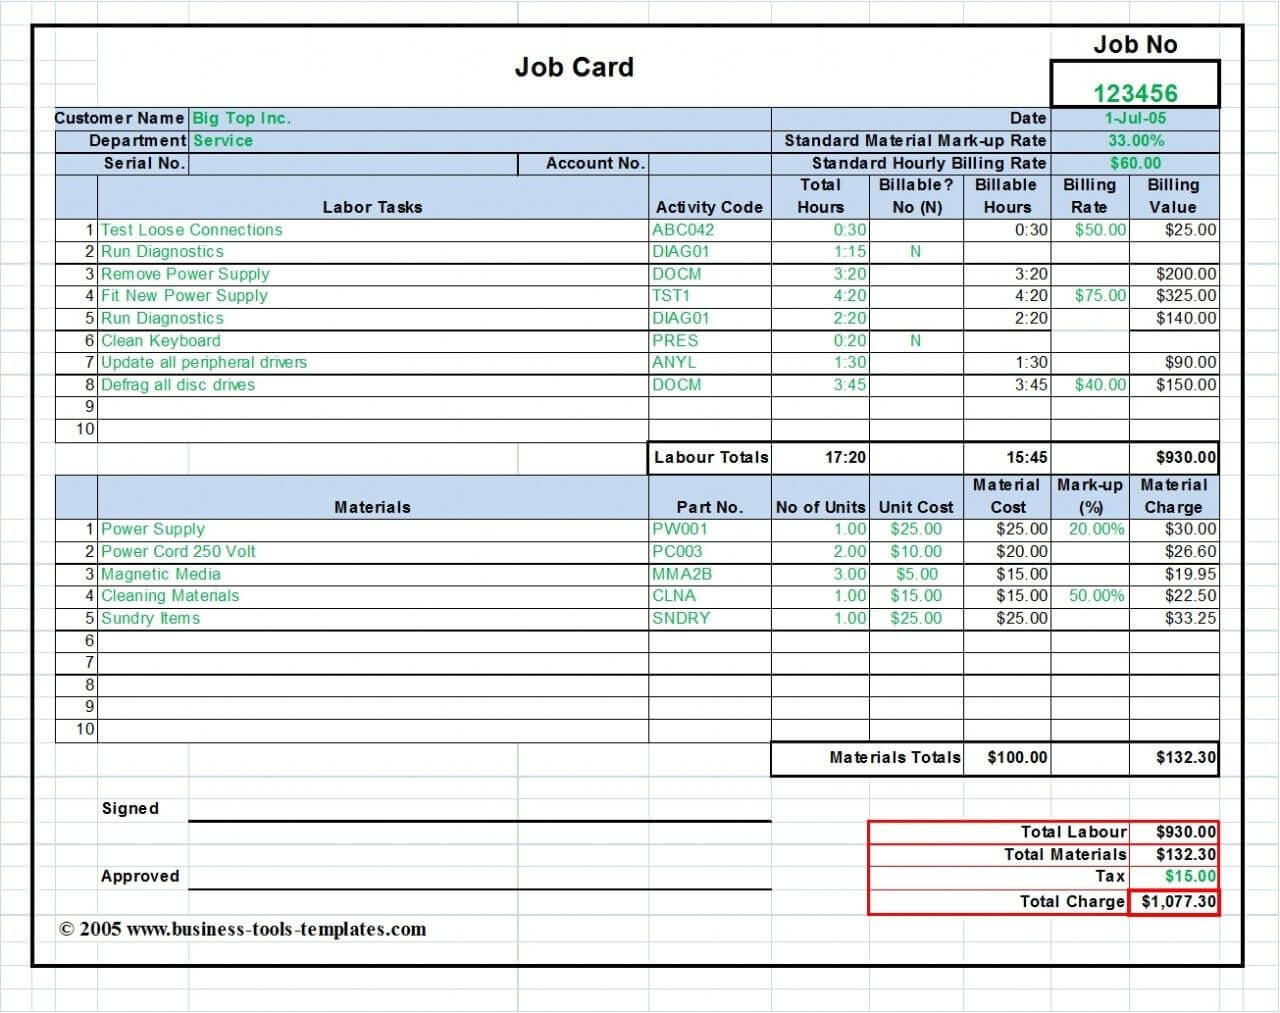 Workshop Job Card Template Excel, Labor & Material Cost in Sample Job Cards Templates